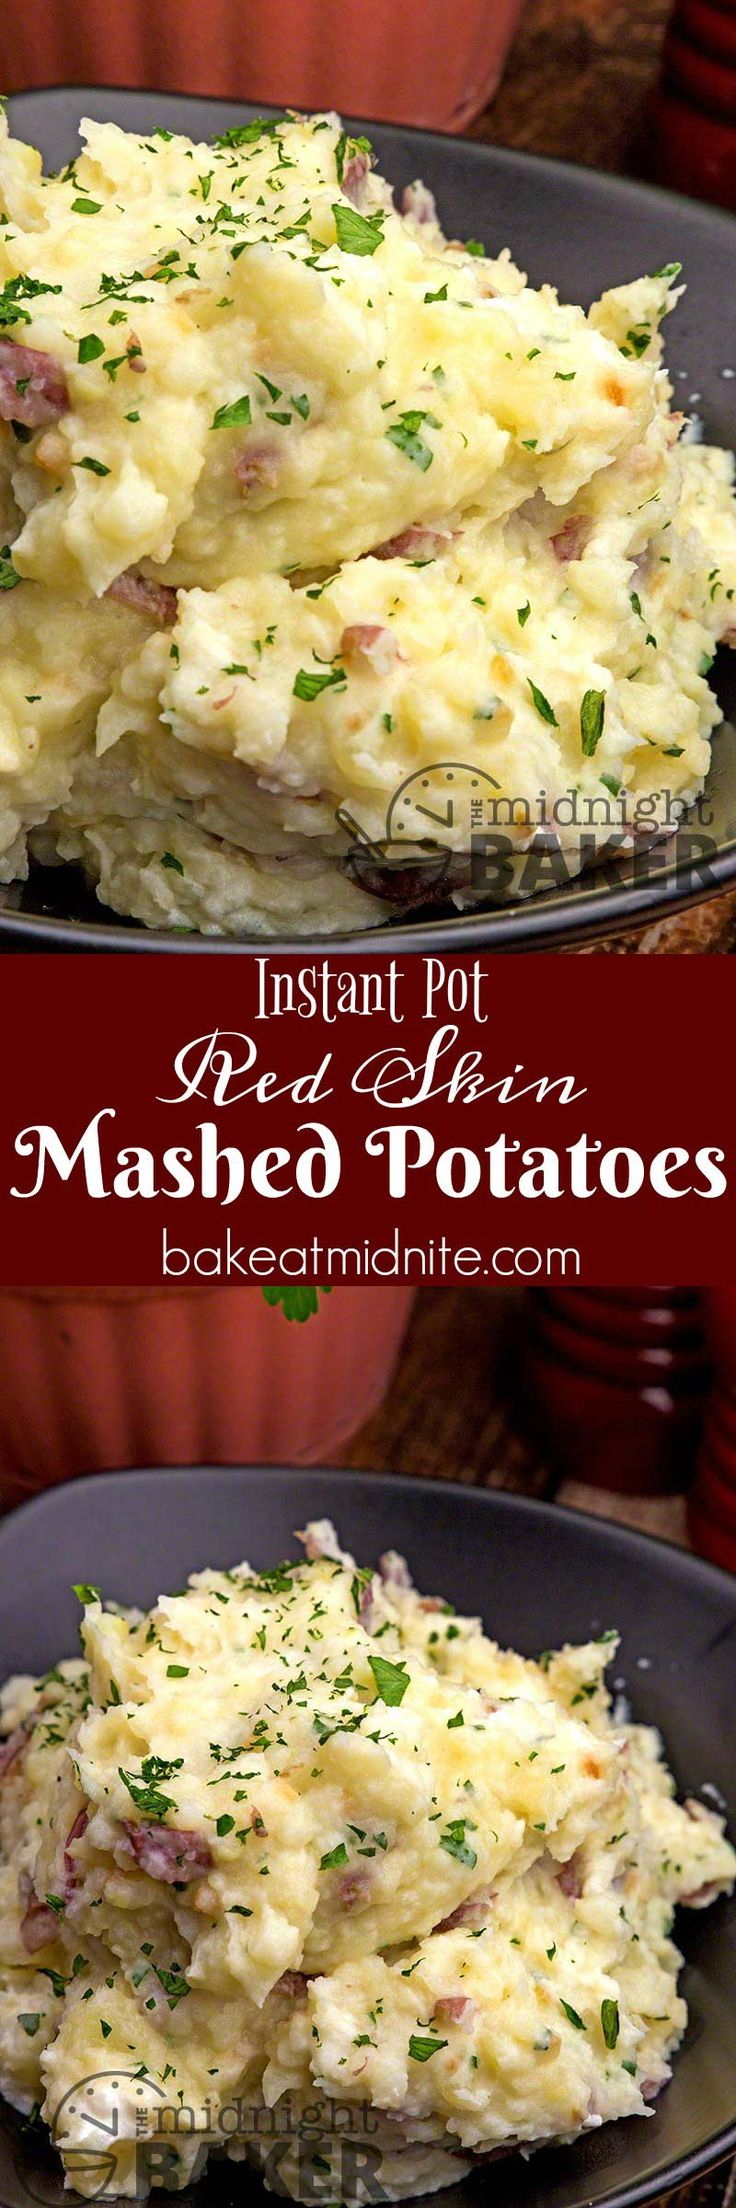 Have these rustic red skinned mashed potatoes super quick with the Instant Pot